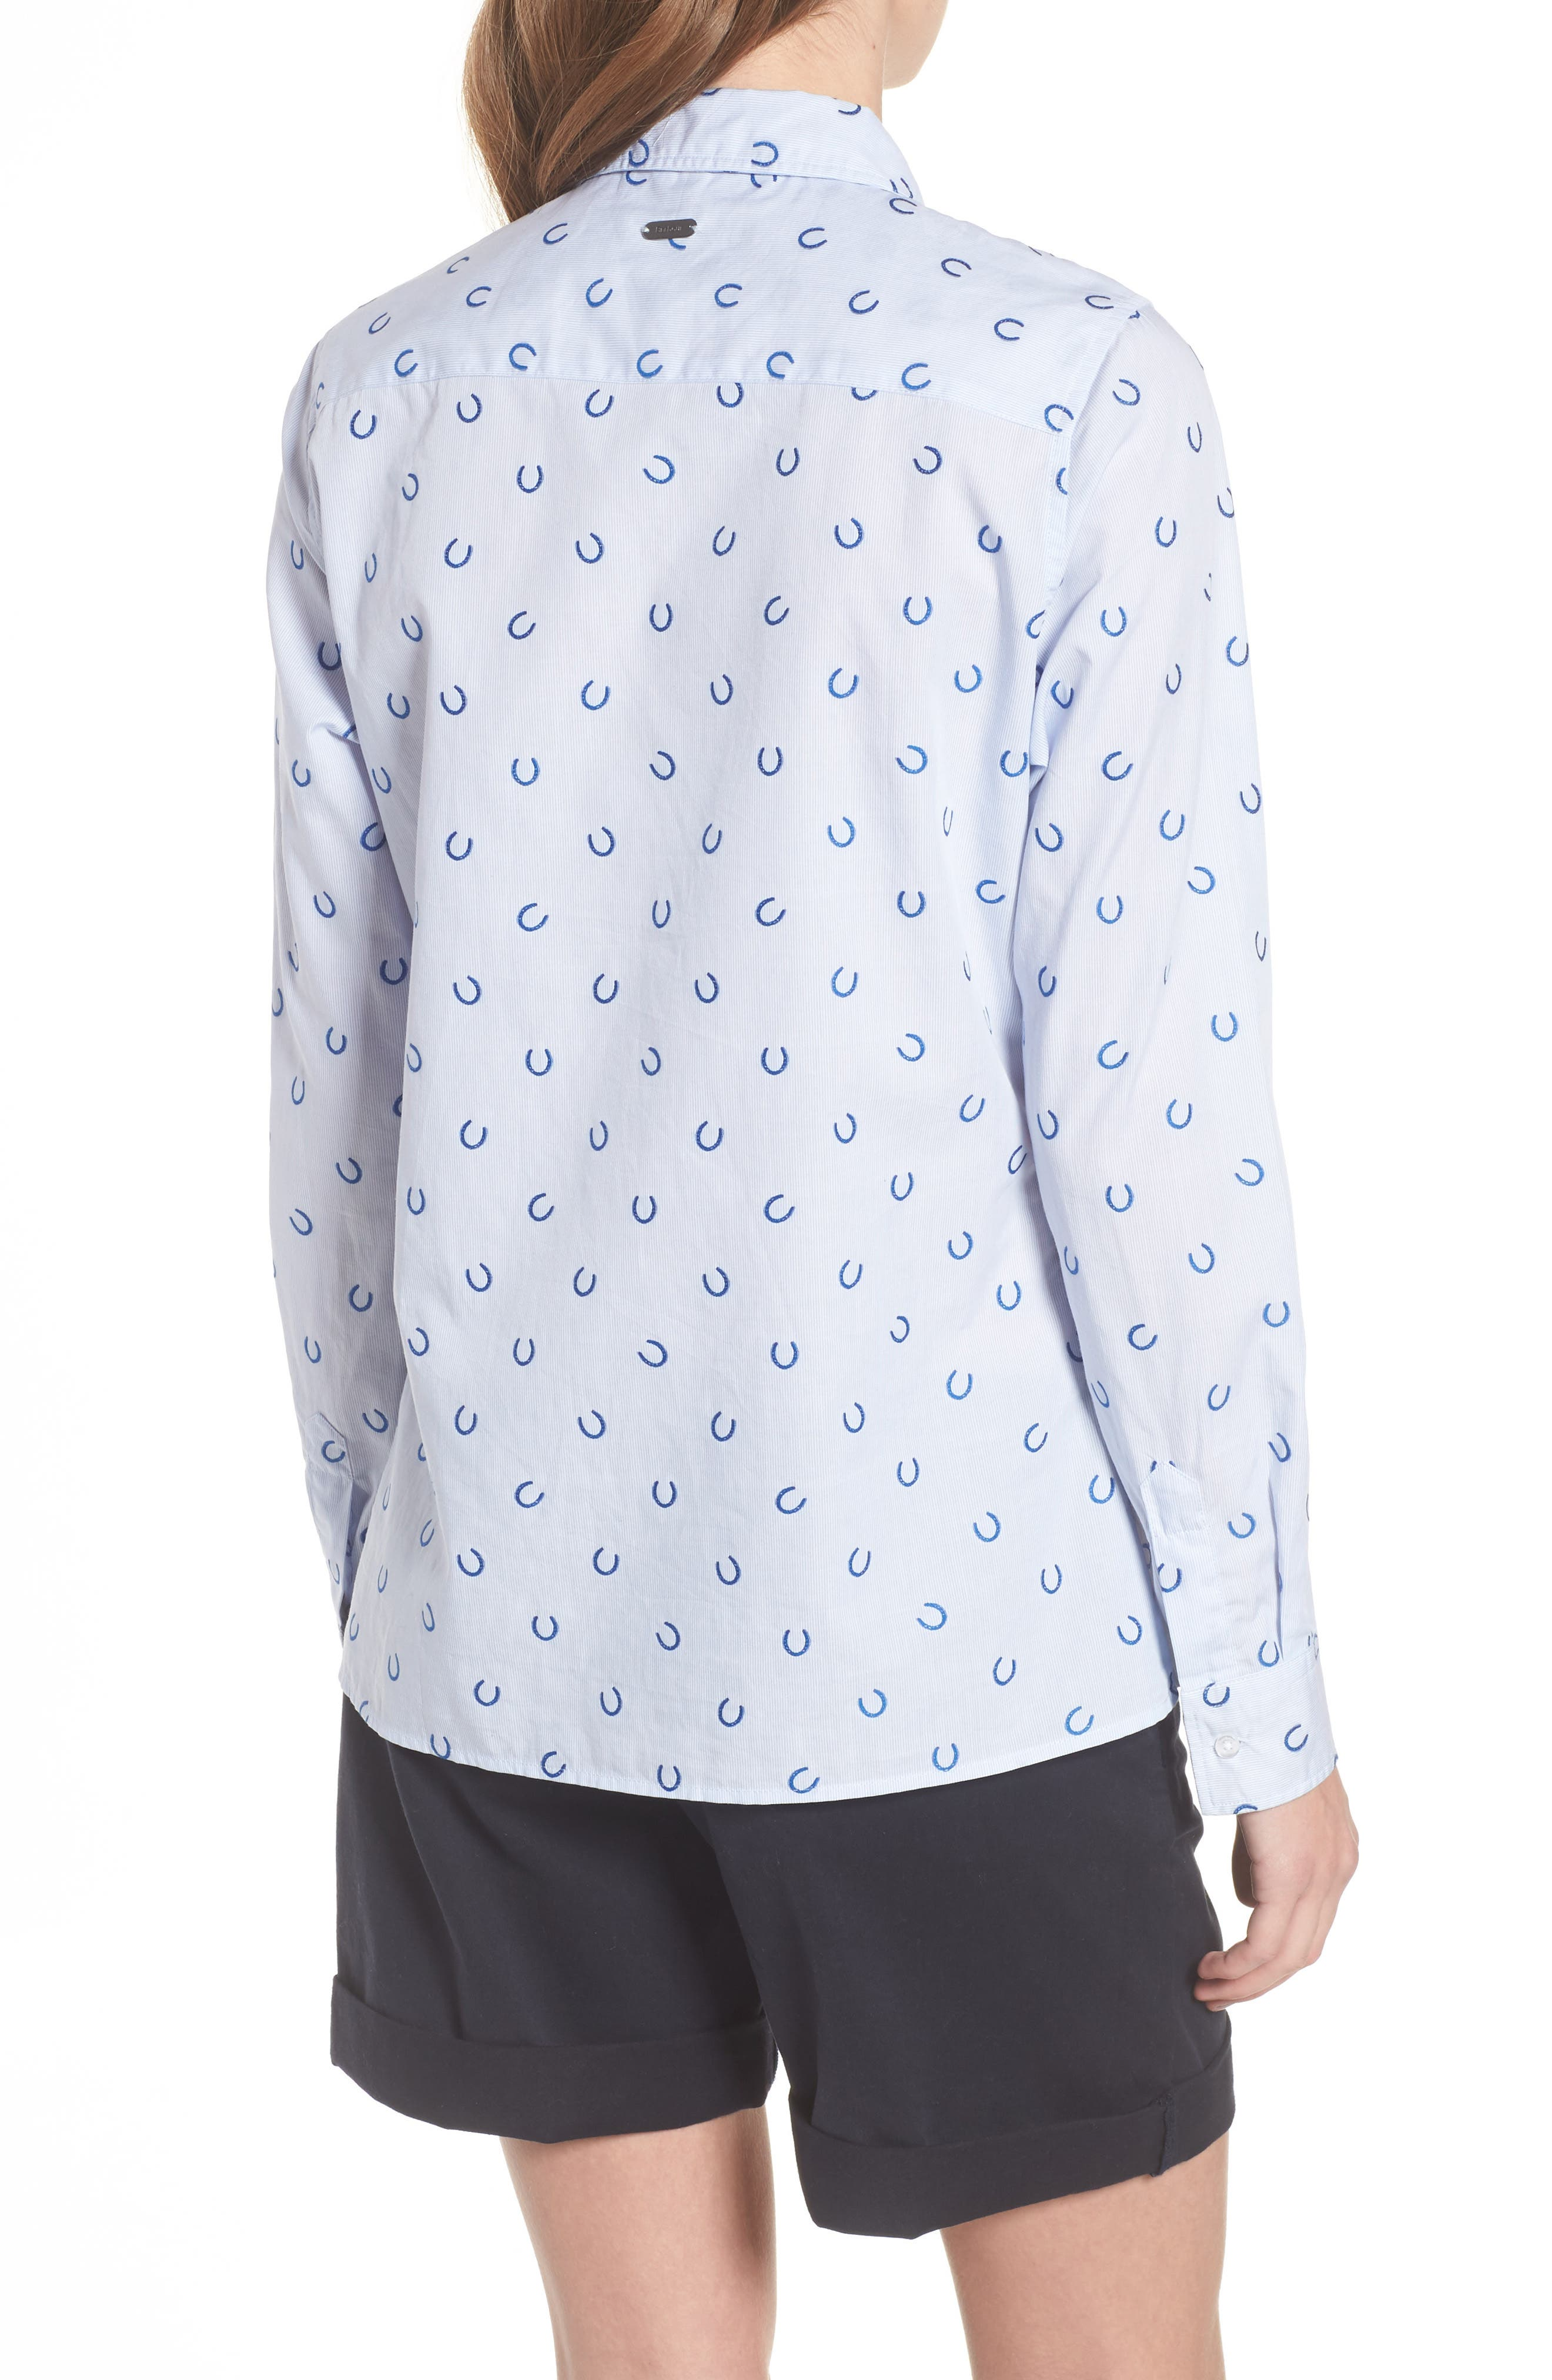 Daisyhill Regular Fit Shirt,                             Alternate thumbnail 2, color,                             450